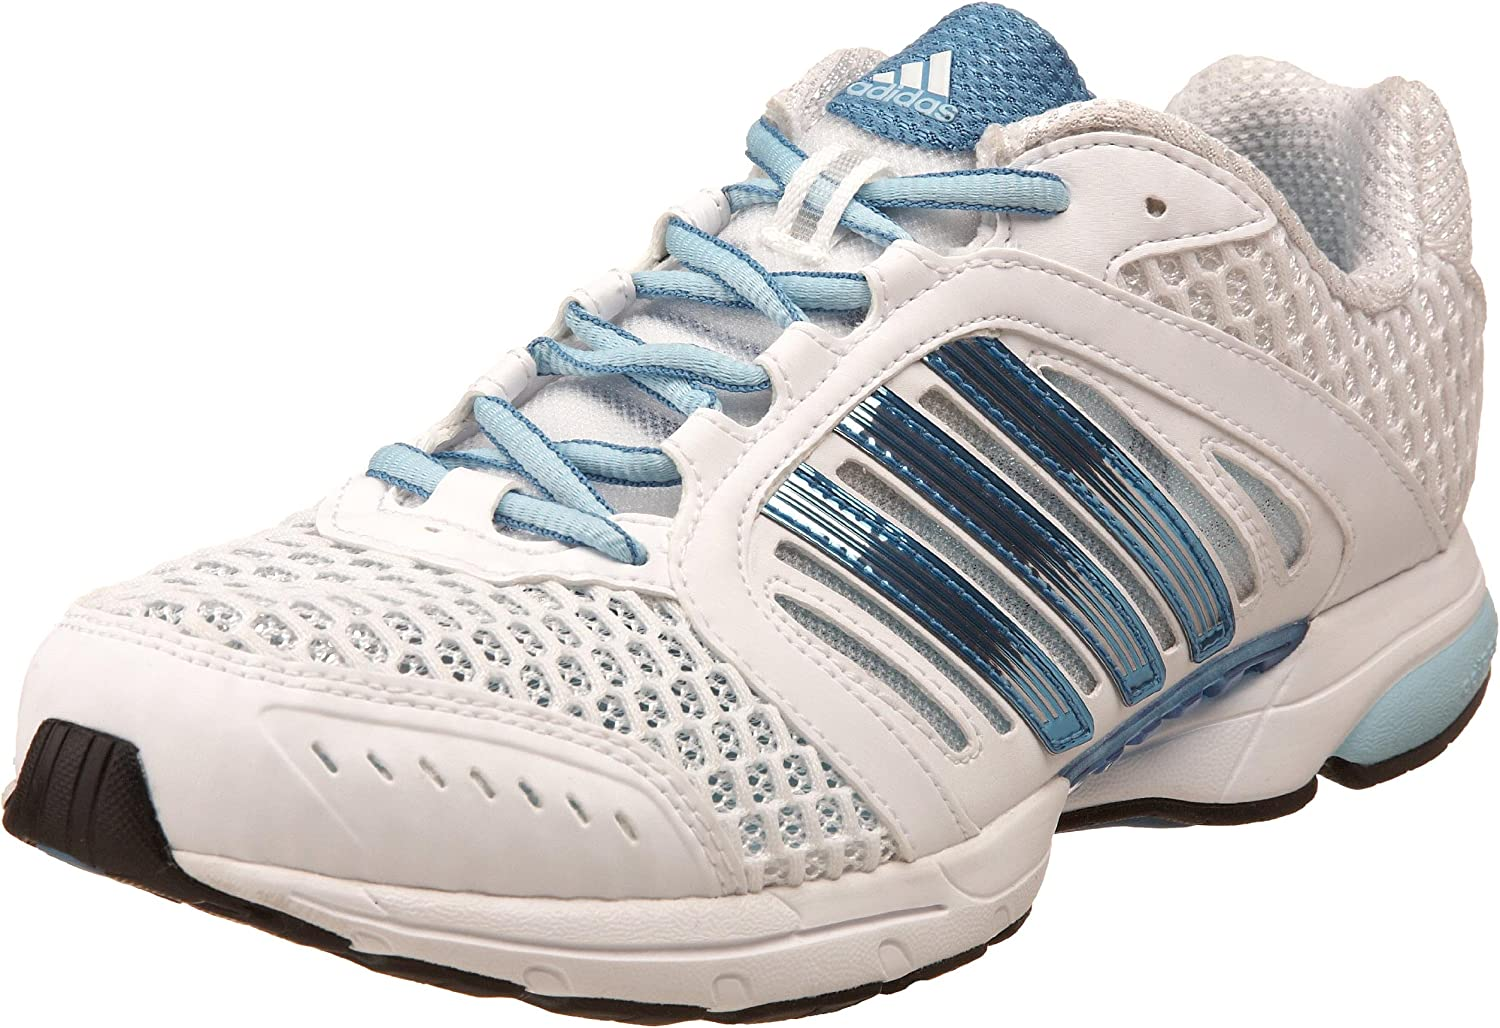 adidas Women s Climacool Modulate Running Shoe